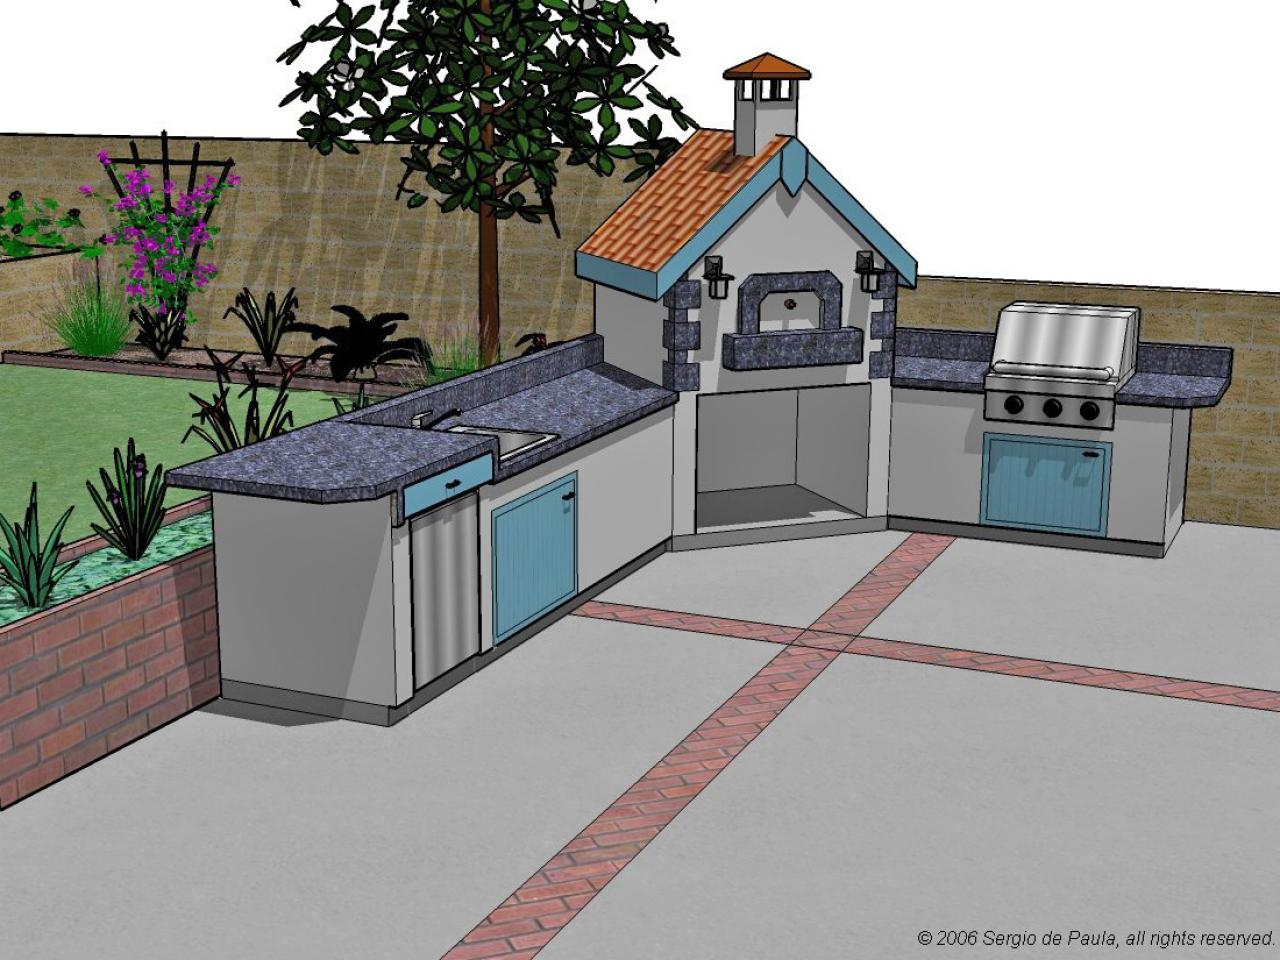 Options for an affordable outdoor kitchen hgtv for Outdoor kitchen ideas plans